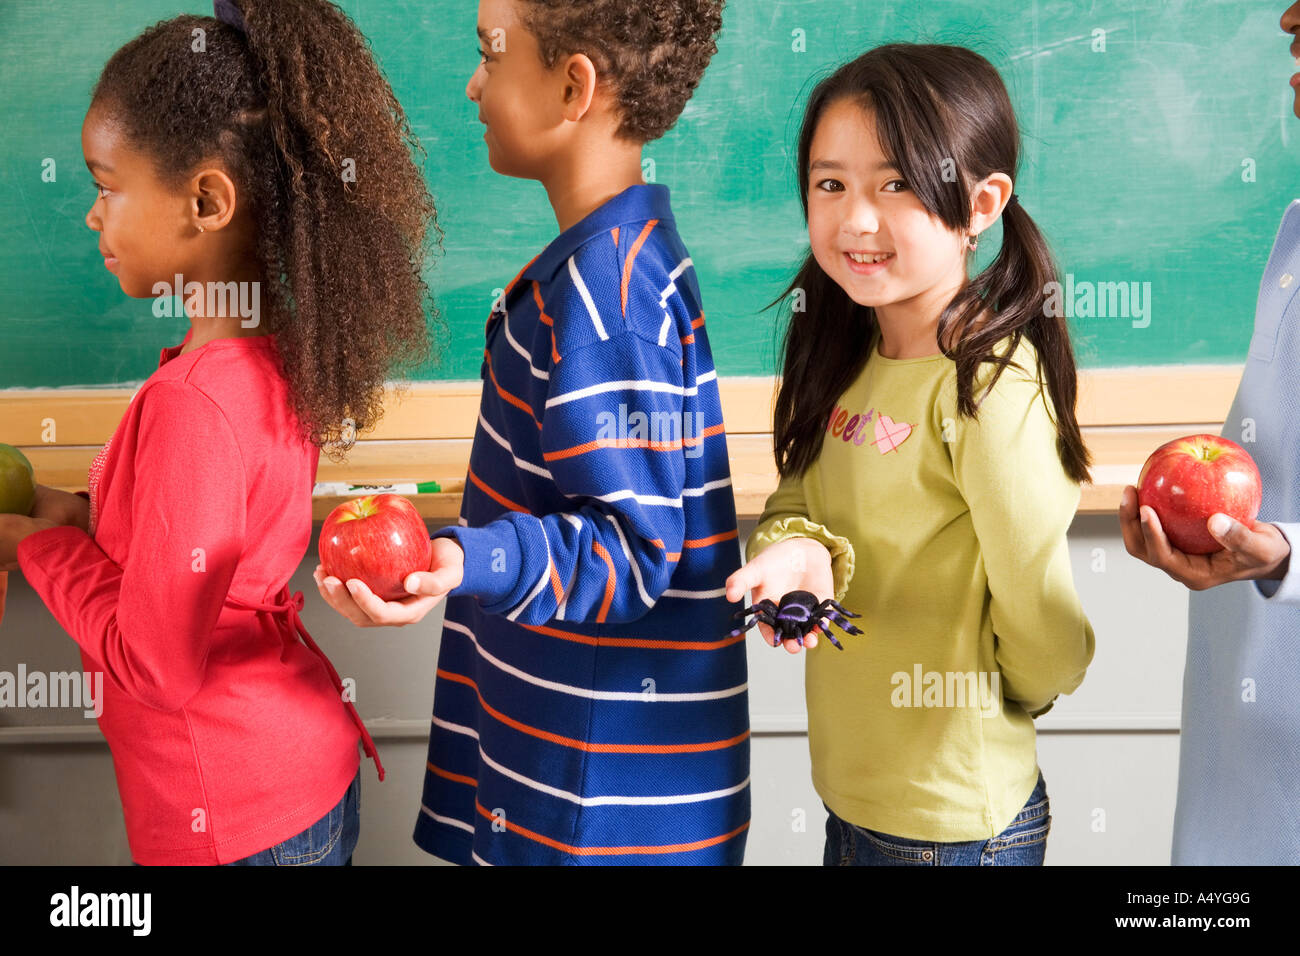 Girl holding spider in line to give apples to teacher - Stock Image